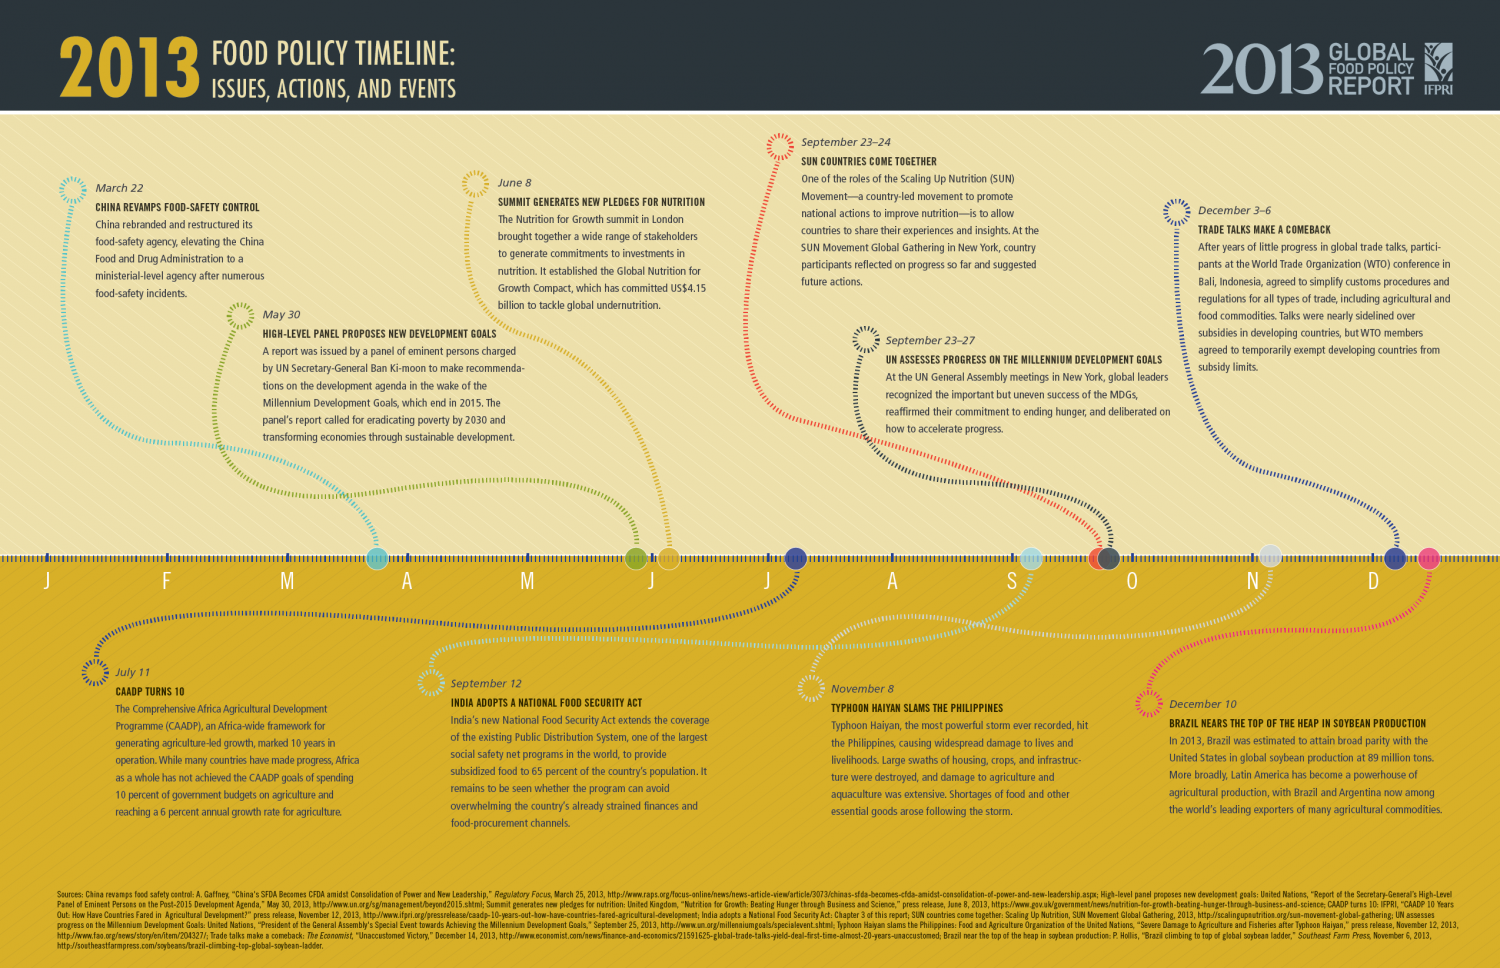 2013 Food Policy Timeline: Issues, Actions, and Events Infographic